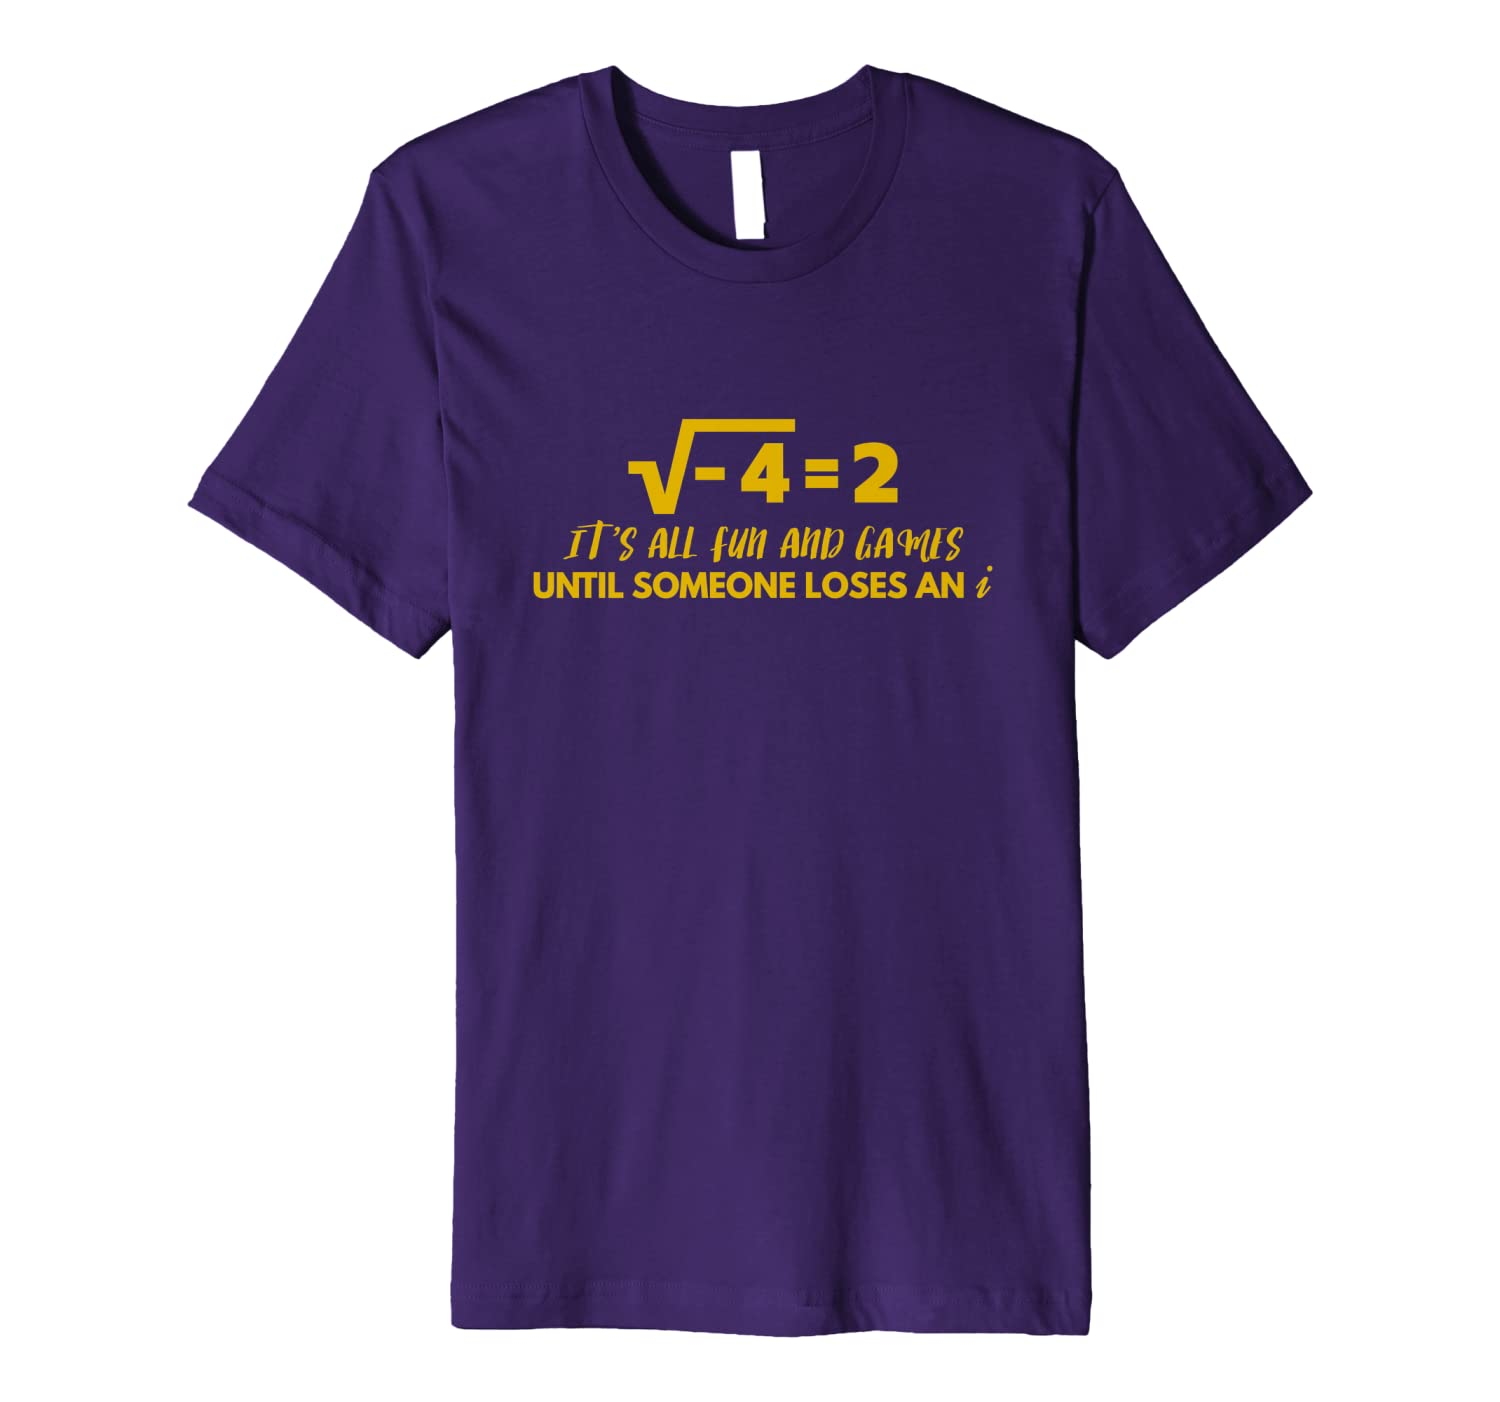 All Fun And Games Until Someone Loses An i – Funny Math Premium T-Shirt